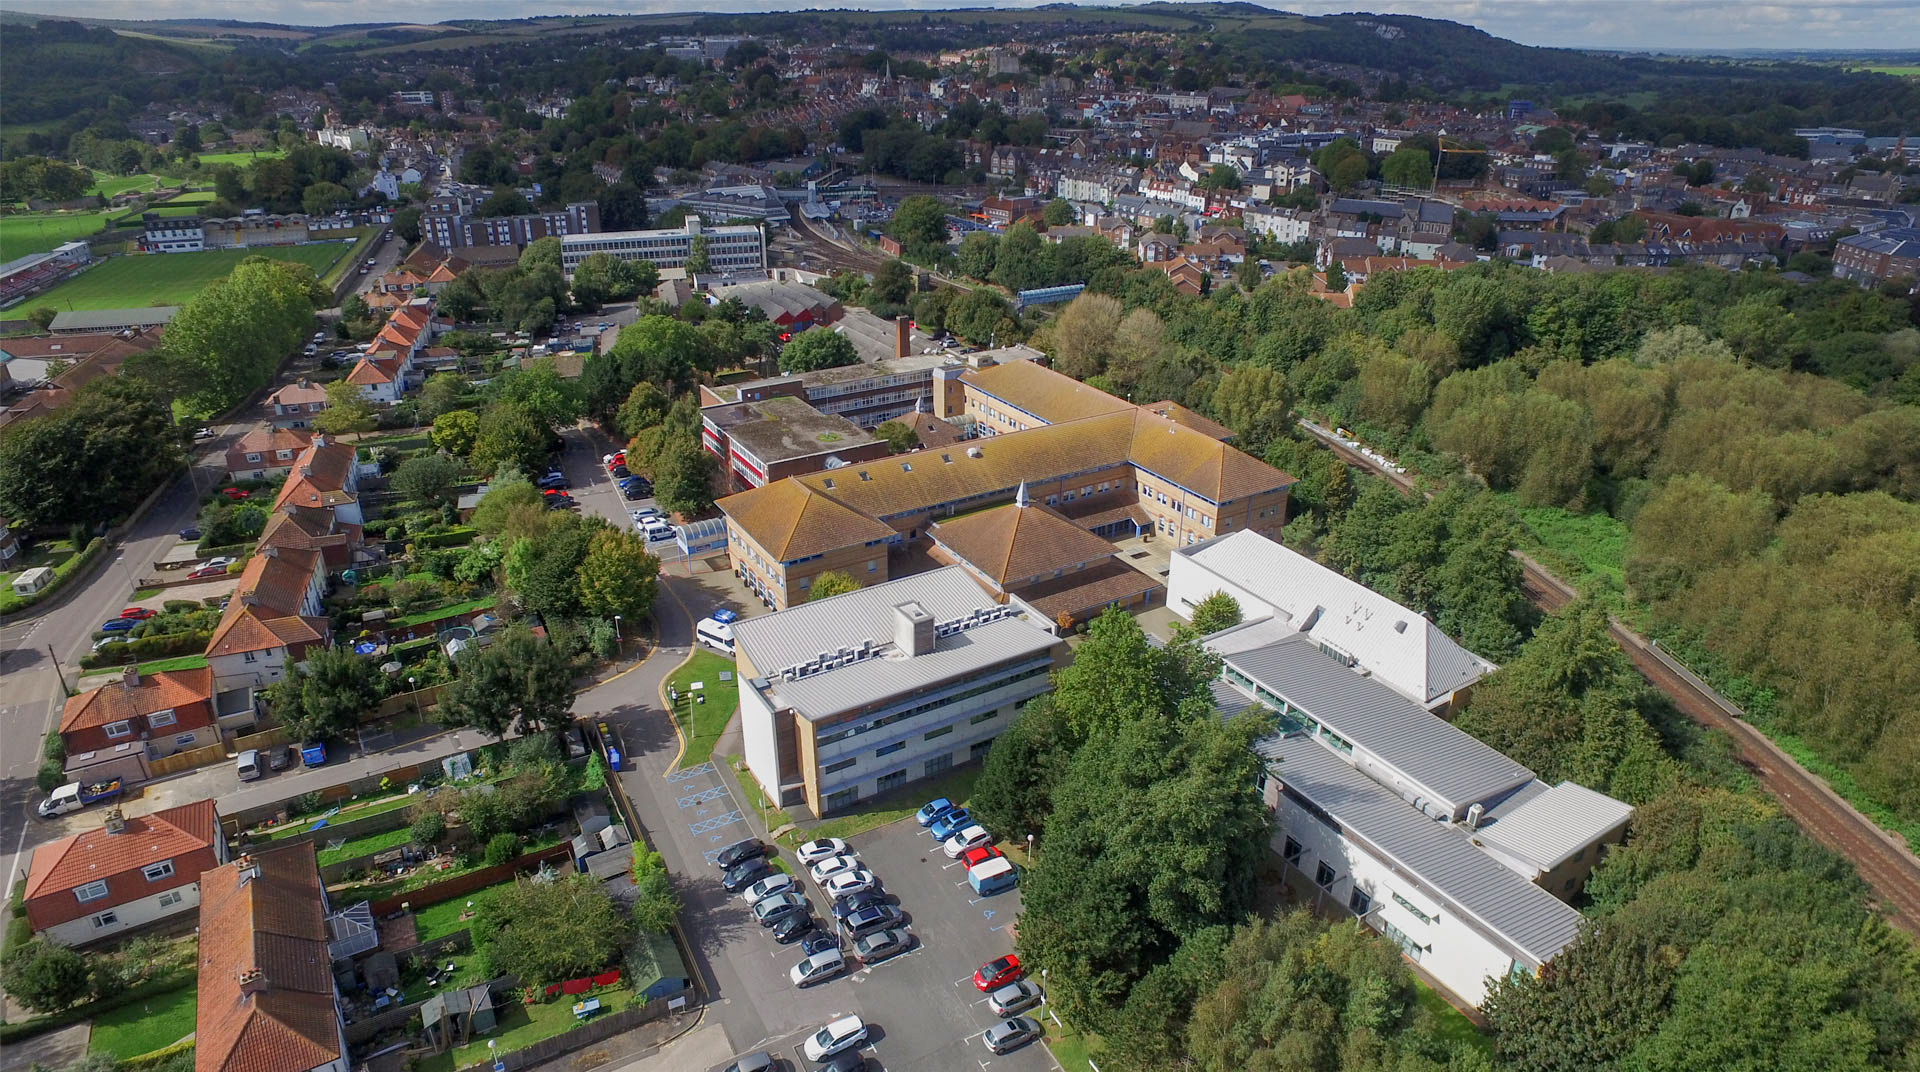 Aerial image of the Lewes campus